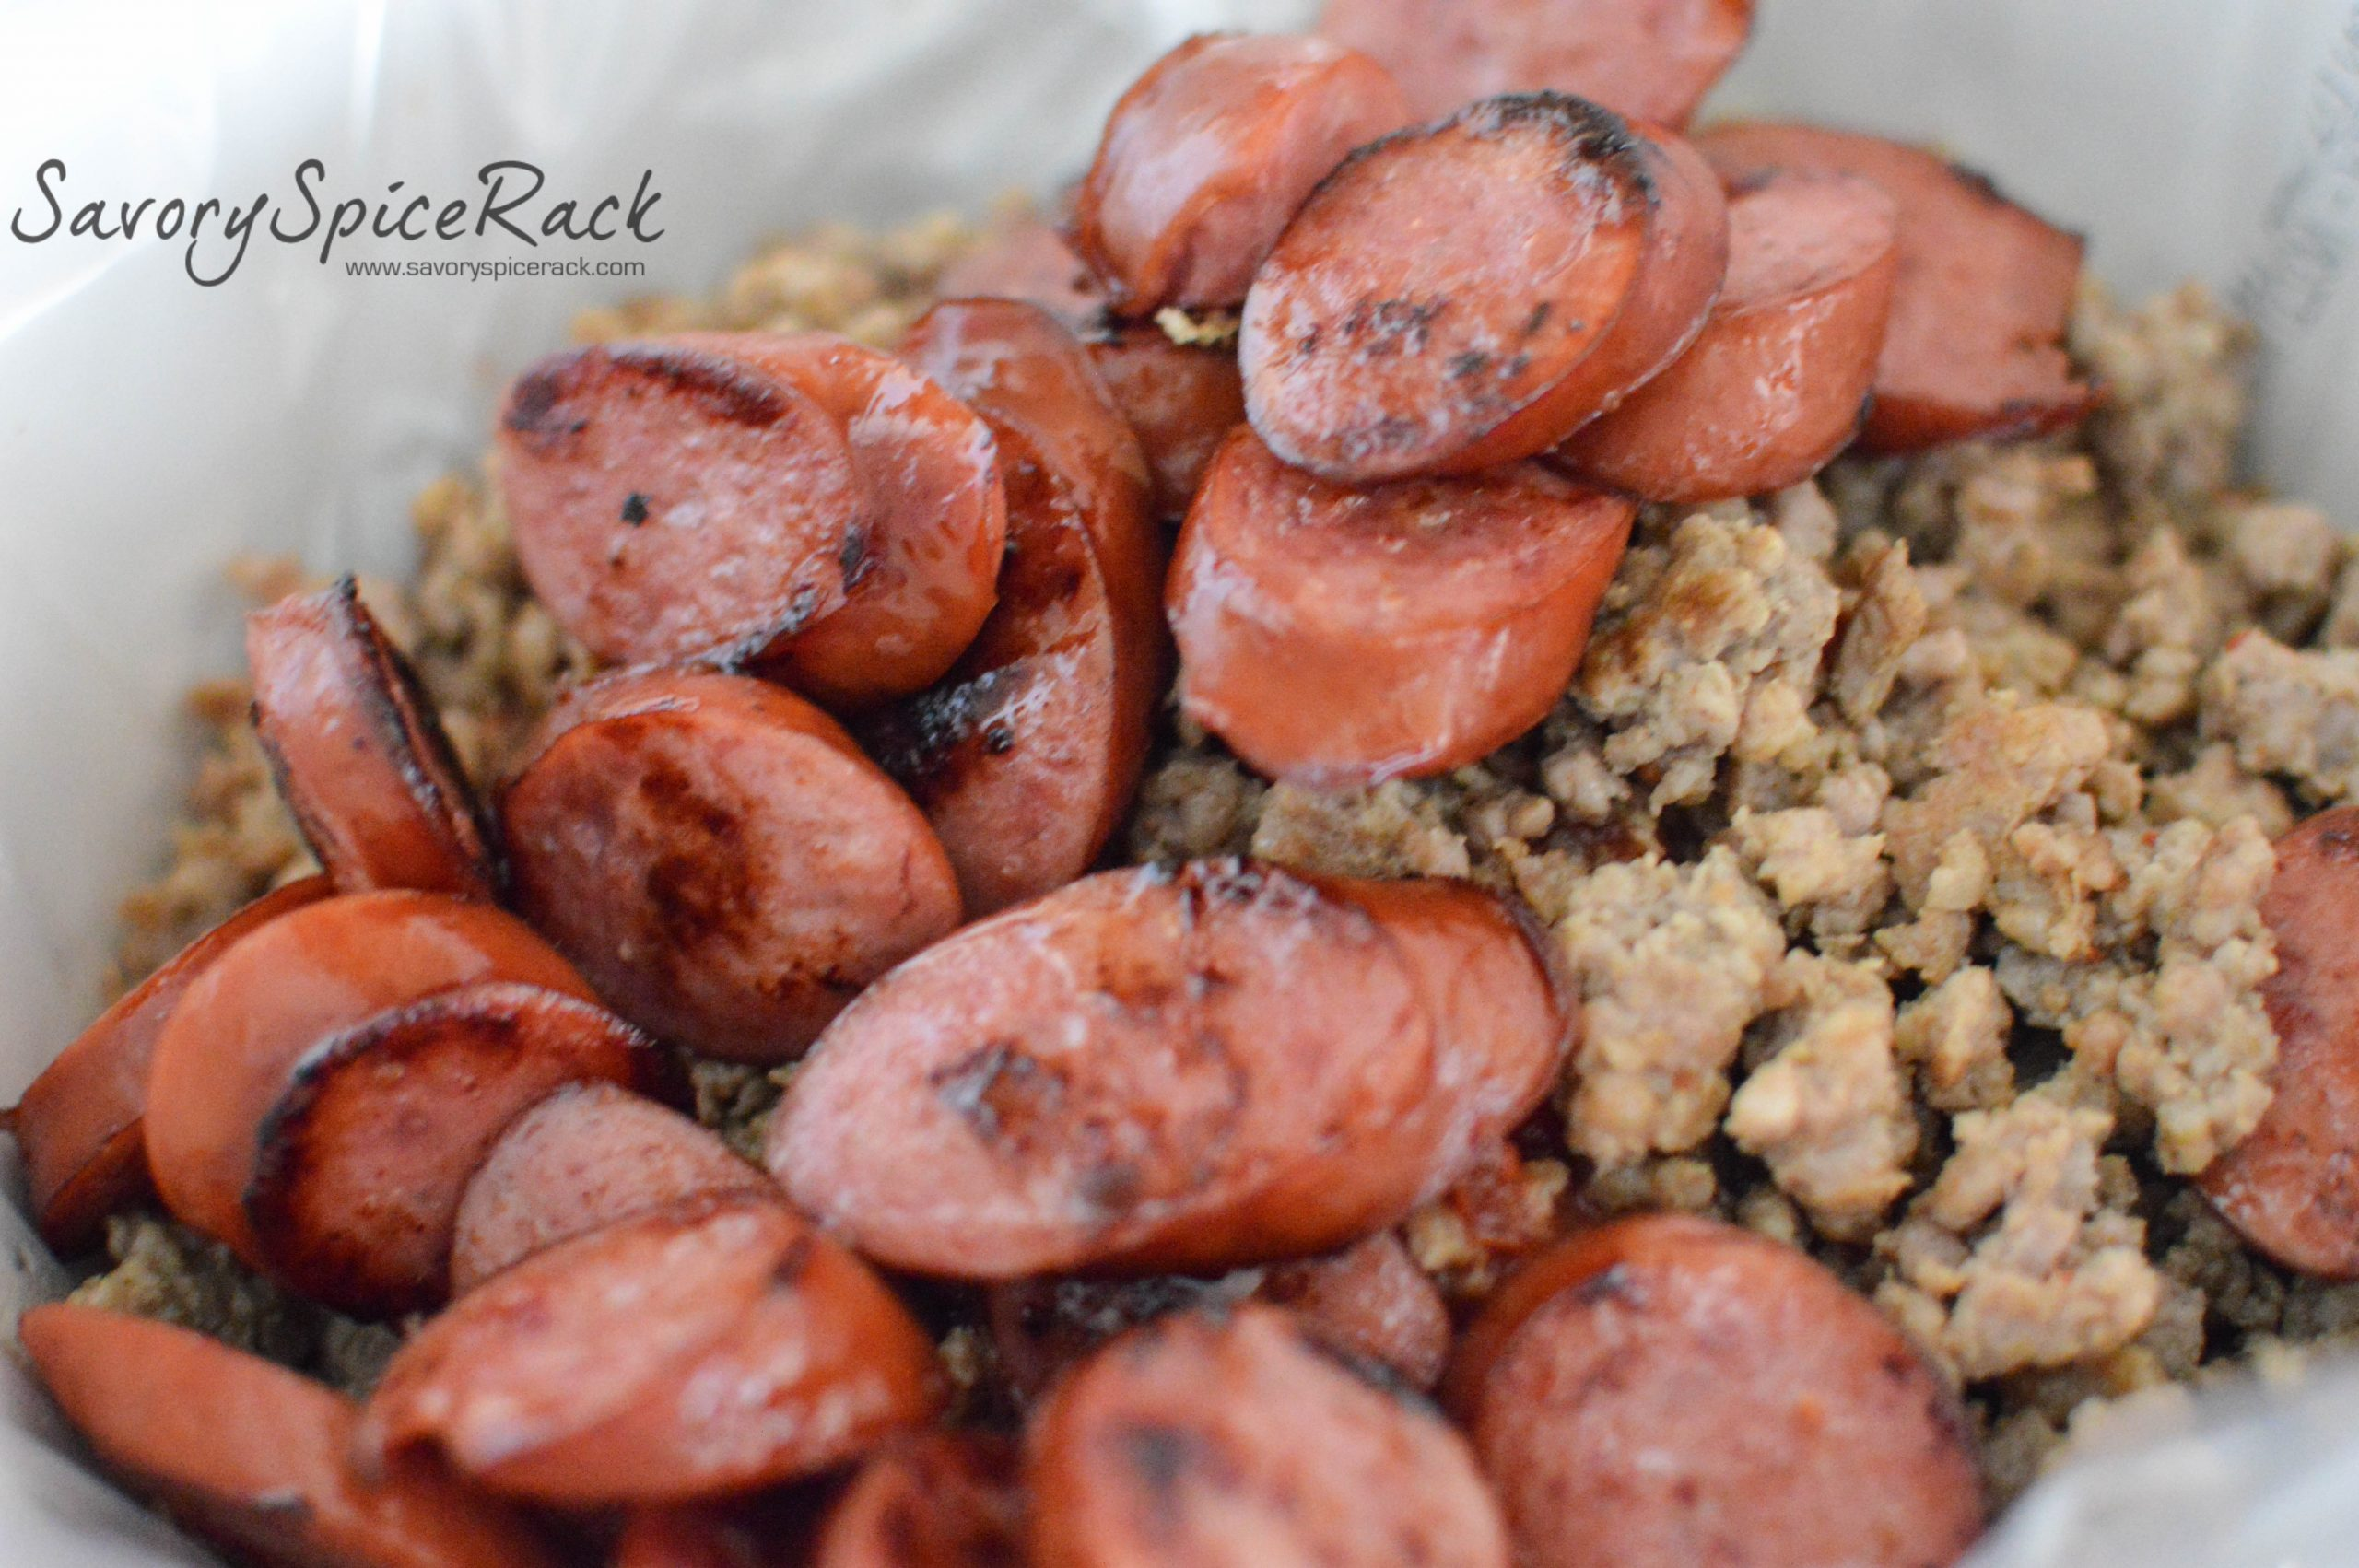 Delicious sausages mixed with kalua pig